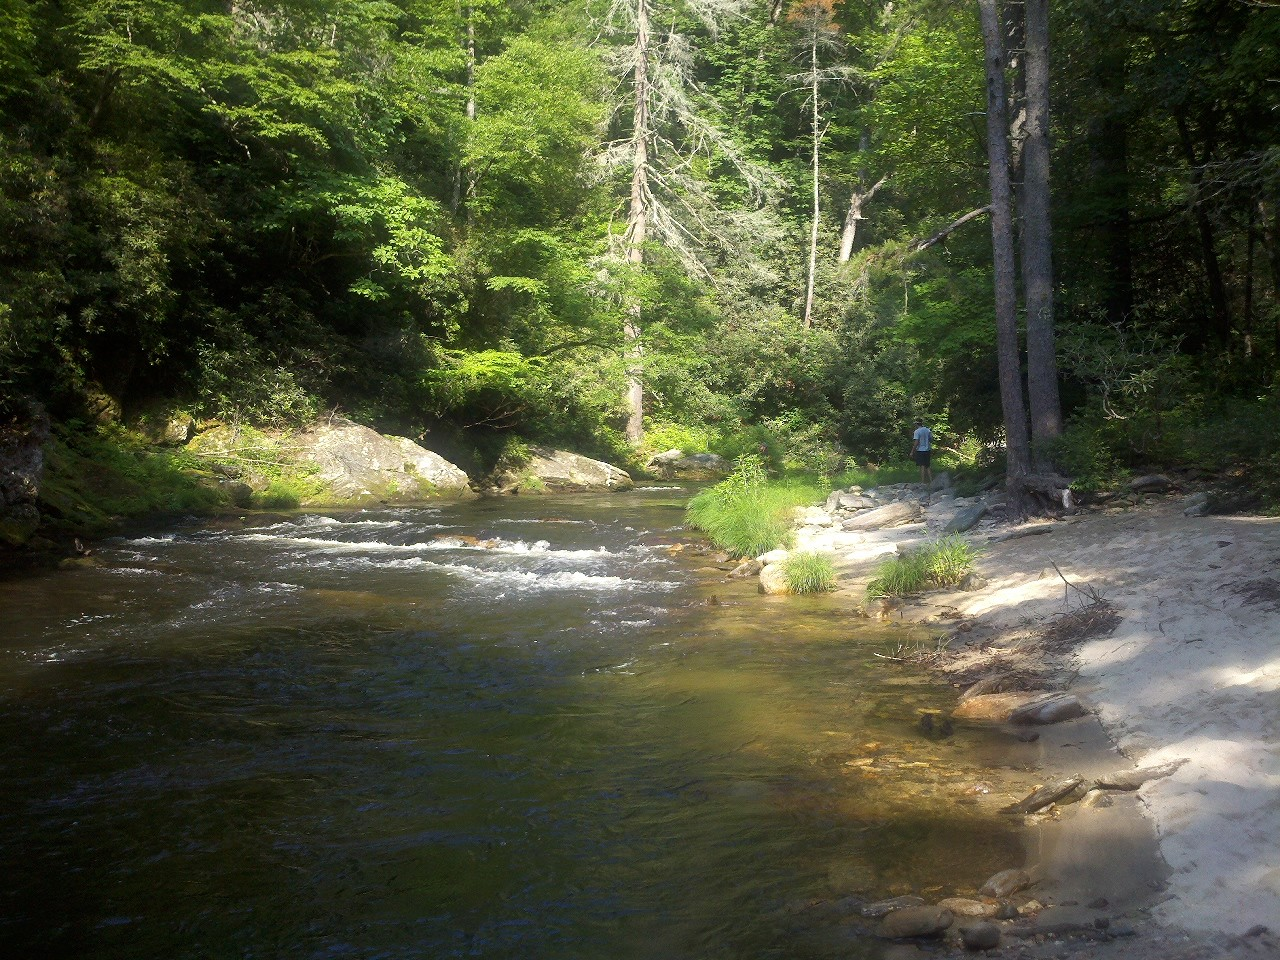 Chattooga River Campout